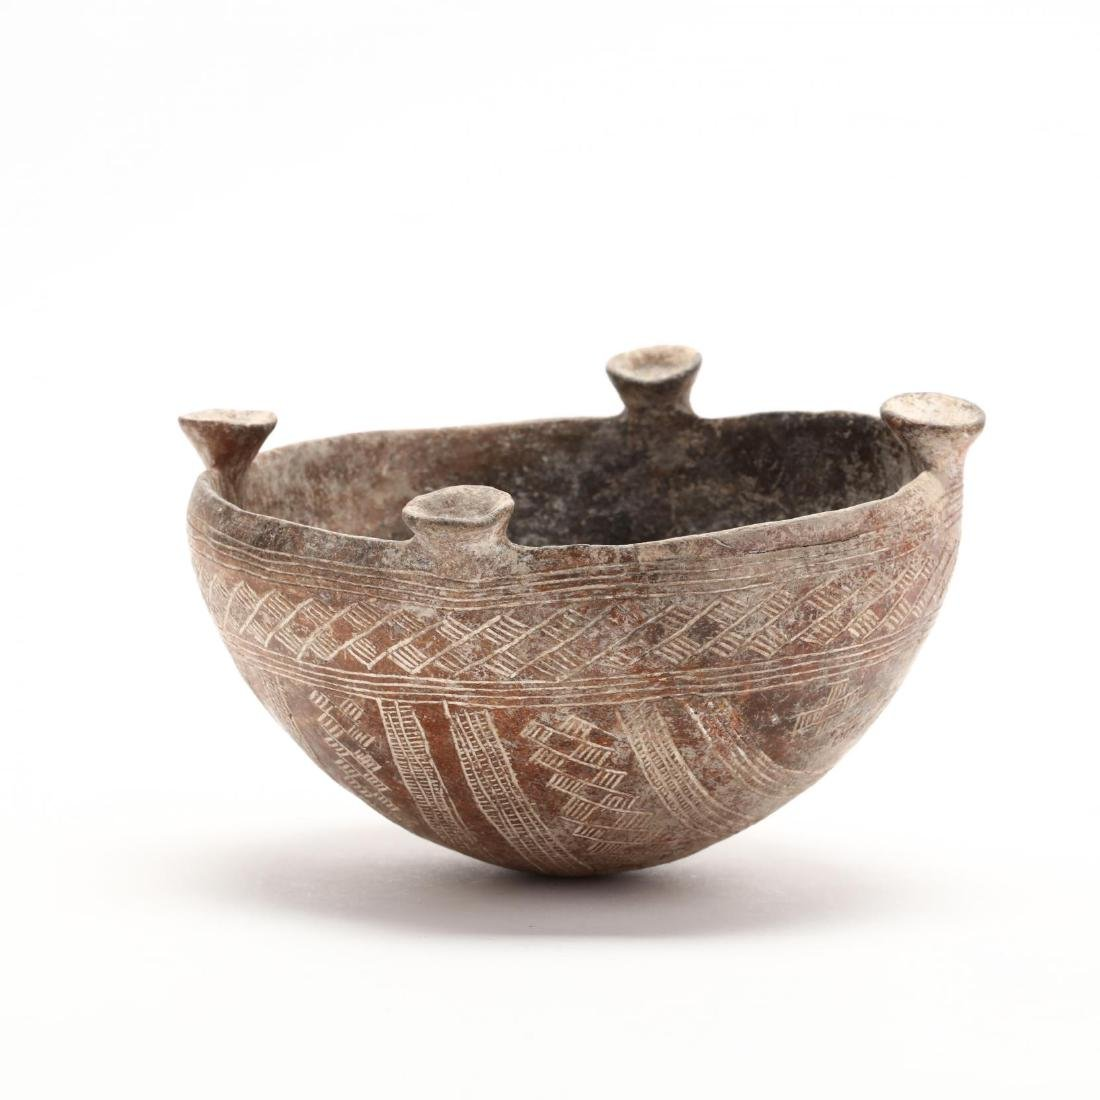 Cypriot Early Bronze Age Polished Bowl - 3